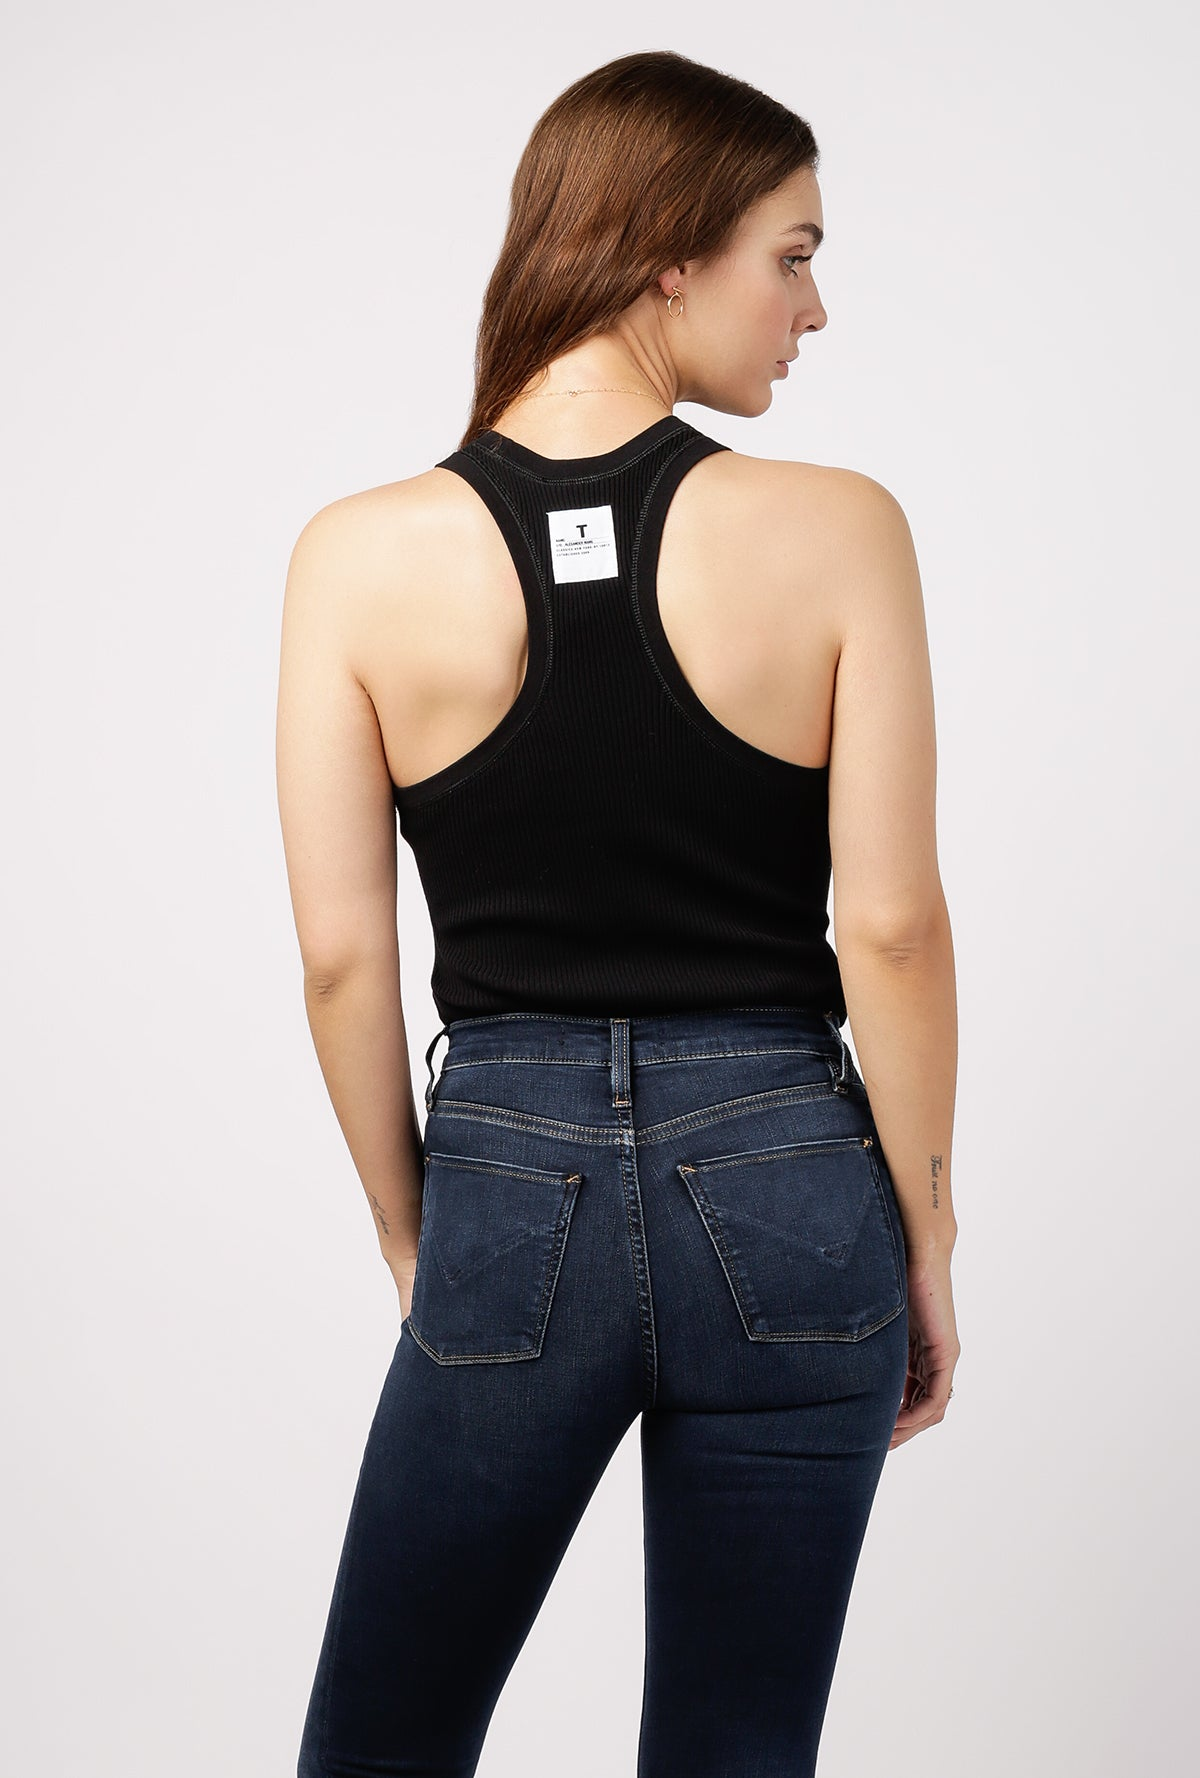 Coverstitched Racerback Tank